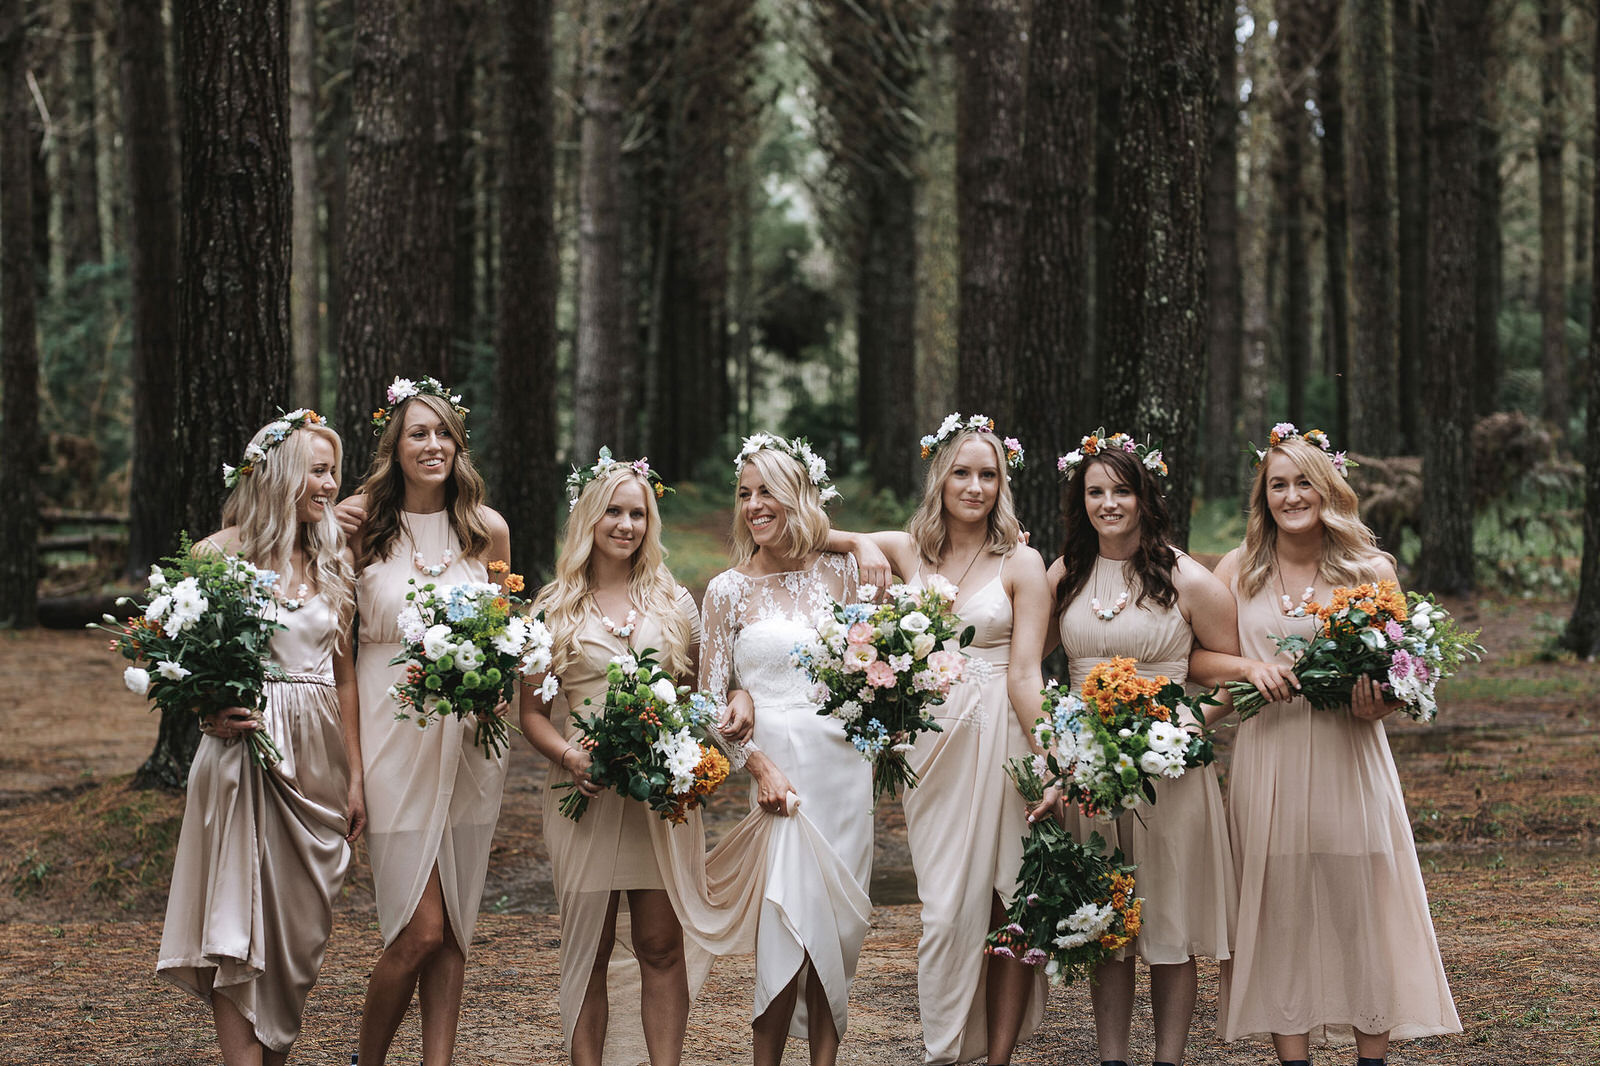 Beautiful nude tones on the eyes, soft coral lips and glowing natural skin was the look chosen for the bridesmaids and a slightly brighter coral lip for the bride. It worked so well on each one and went with the organic look that was created with the flowers and hair.